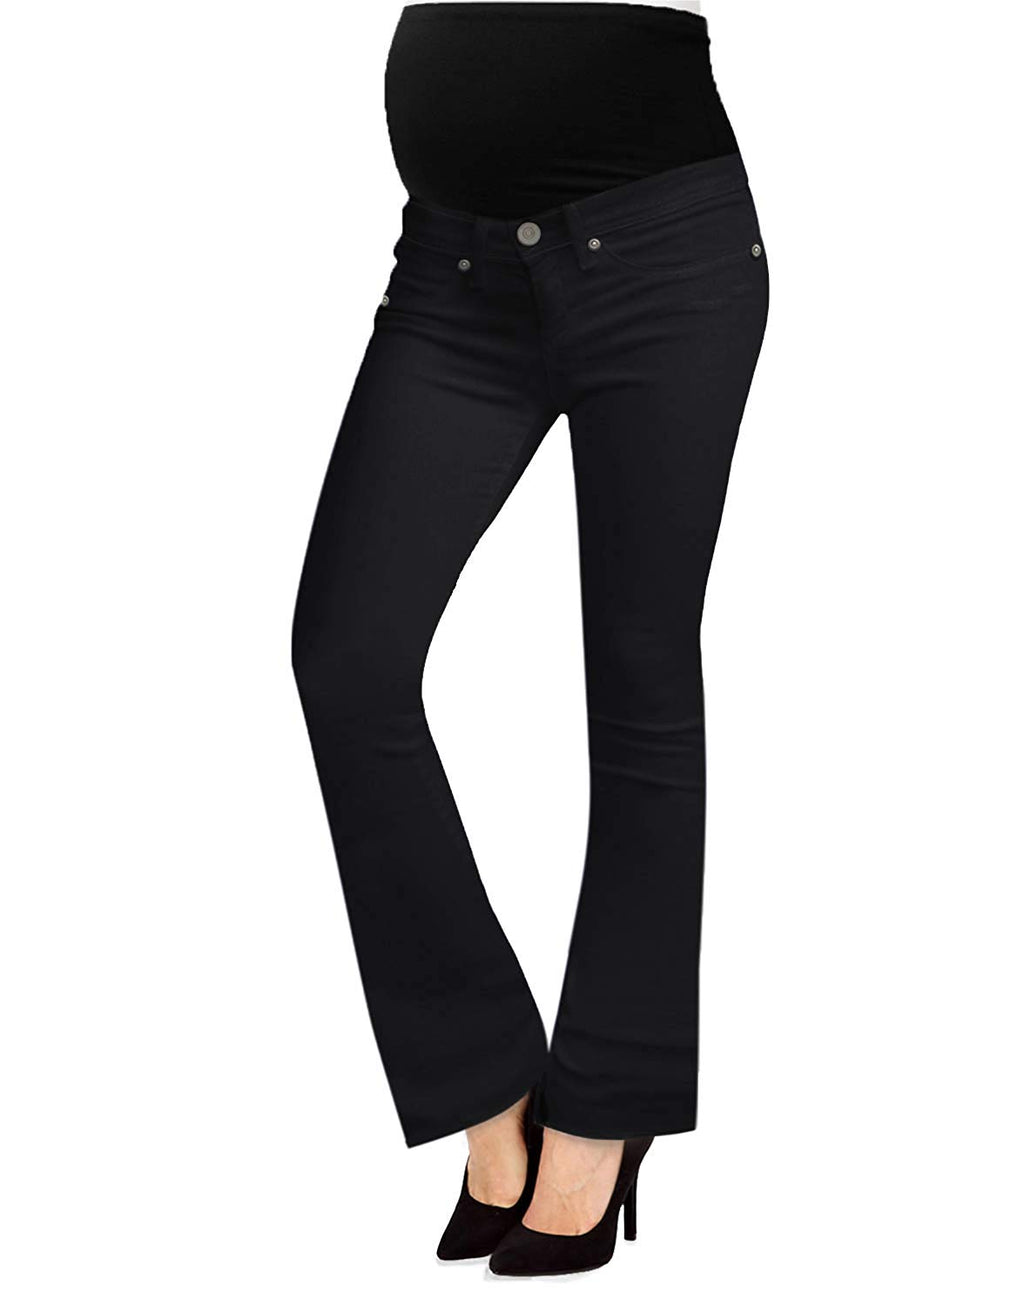 Black Stretch Bootcut Maternity Jeans - Mommylicious